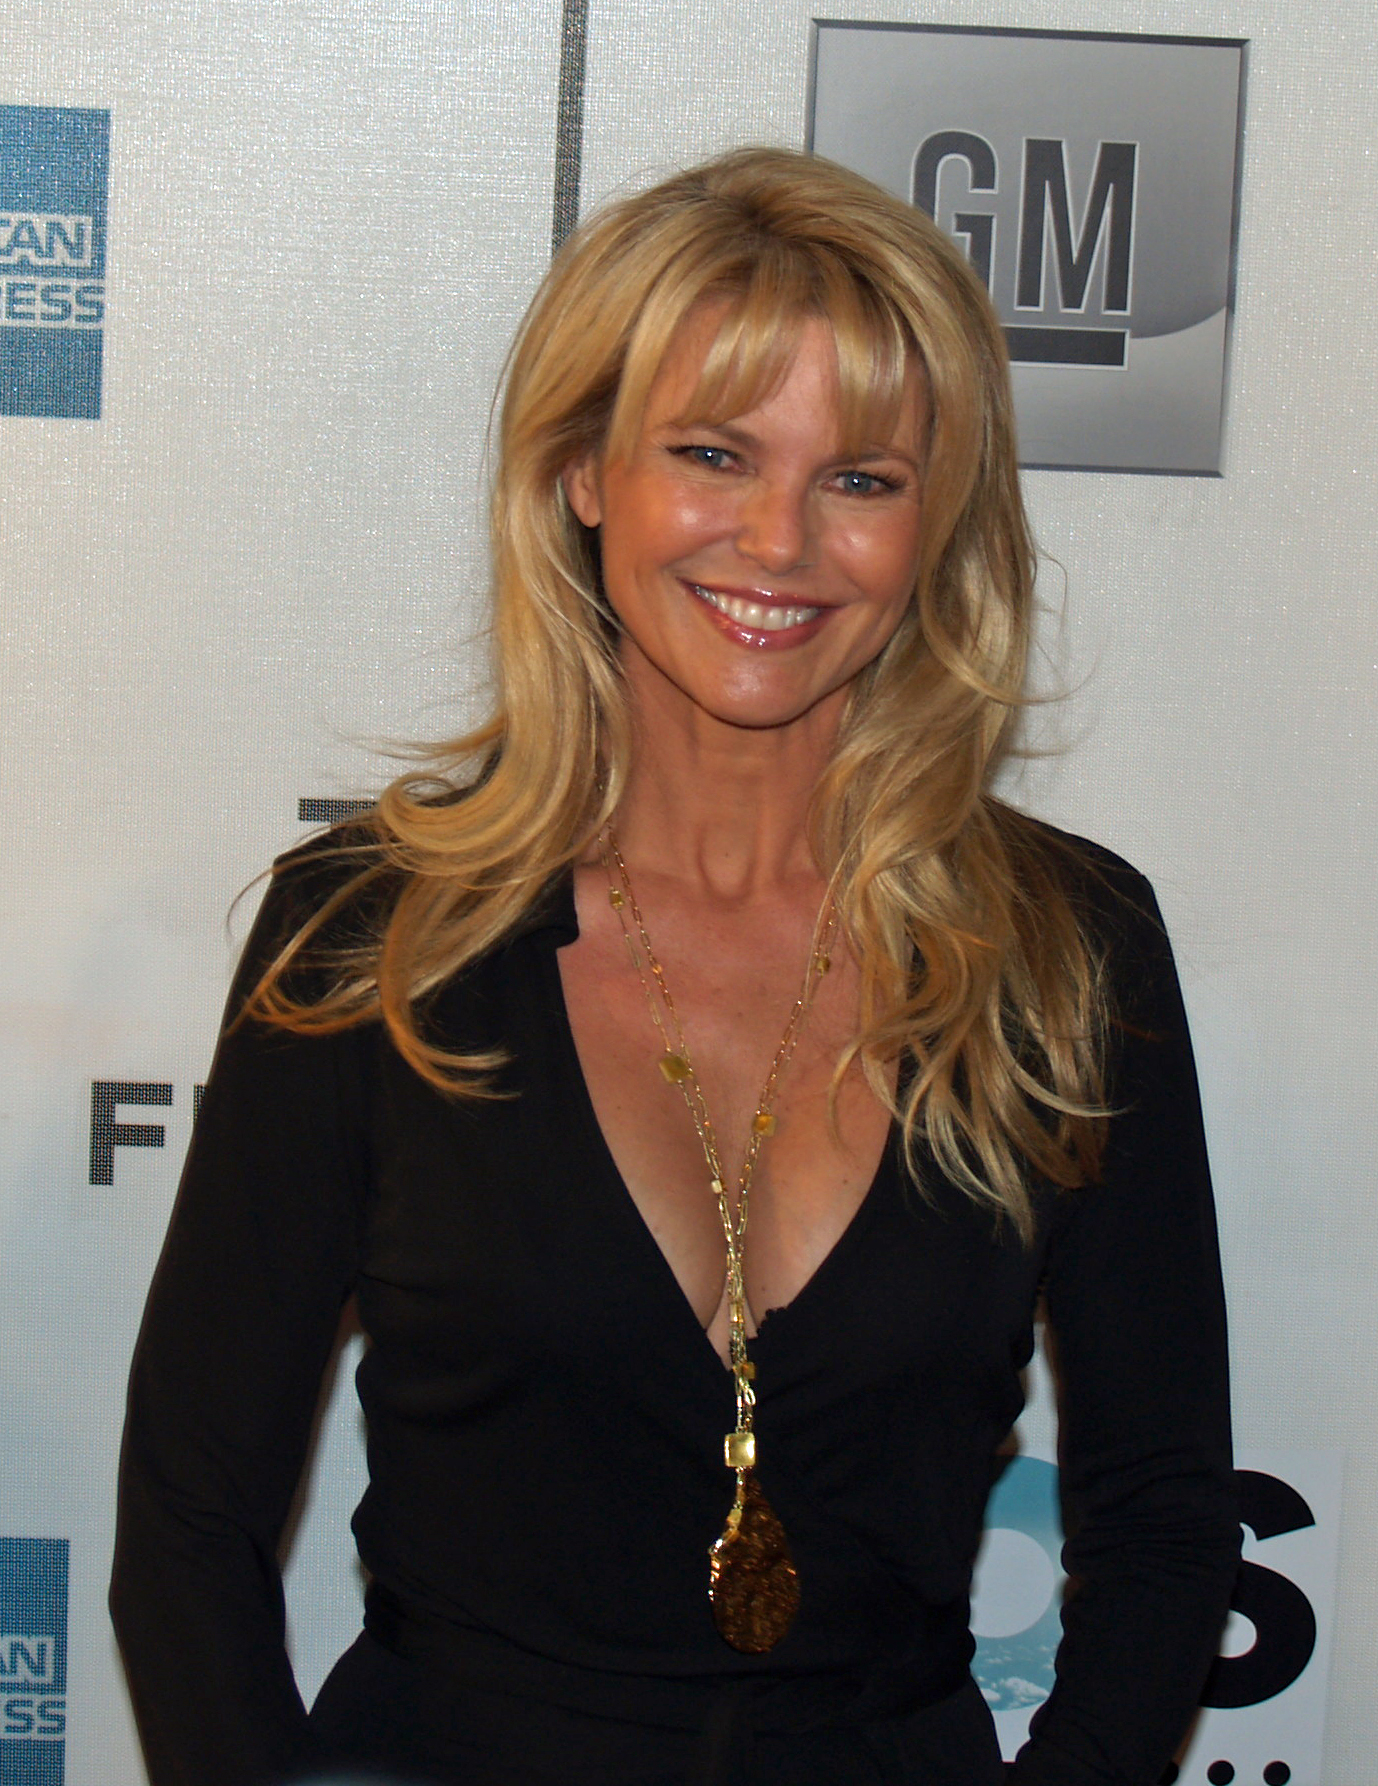 The 64-year old daughter of father (?) and mother Majorie Christie Brinkley in 2018 photo. Christie Brinkley earned a  million dollar salary - leaving the net worth at 80 million in 2018